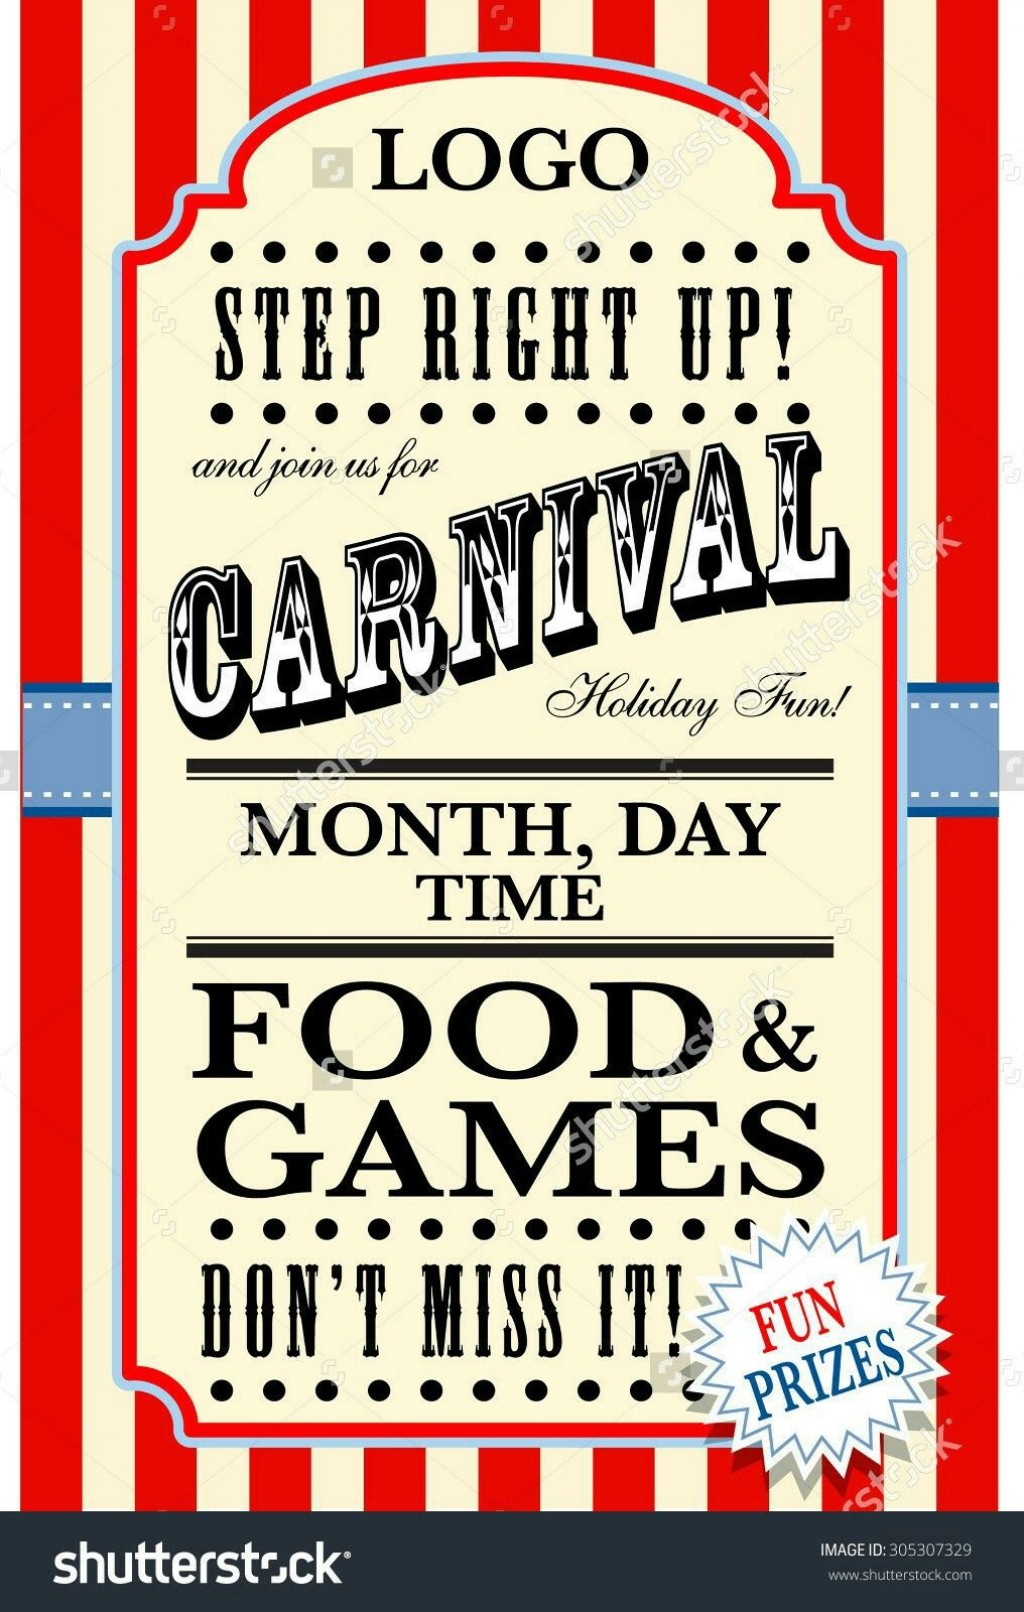 005 Staggering Free School Carnival Flyer Template Photo  Templates DownloadLarge